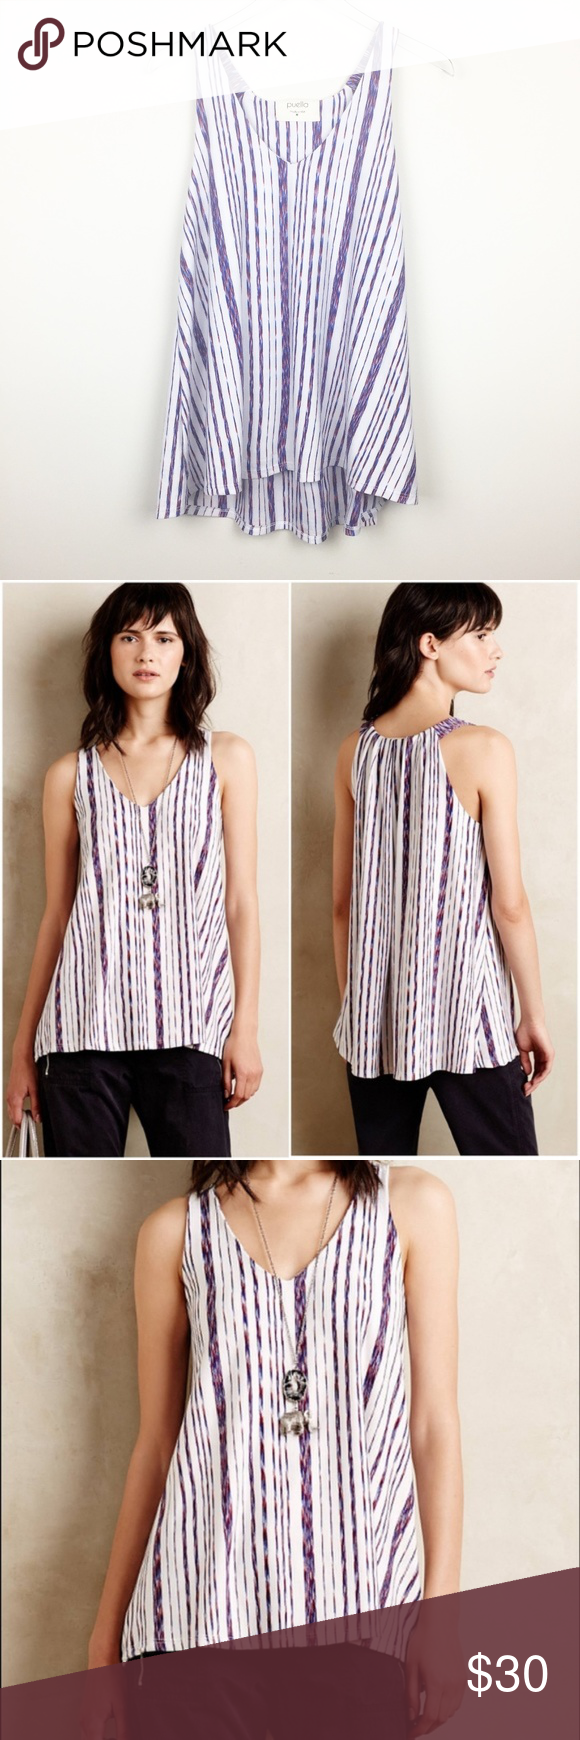 75aaceebcc3 Puella | North South Striped Swing Tunic Top Cute striped swing blouse by  Puella, which